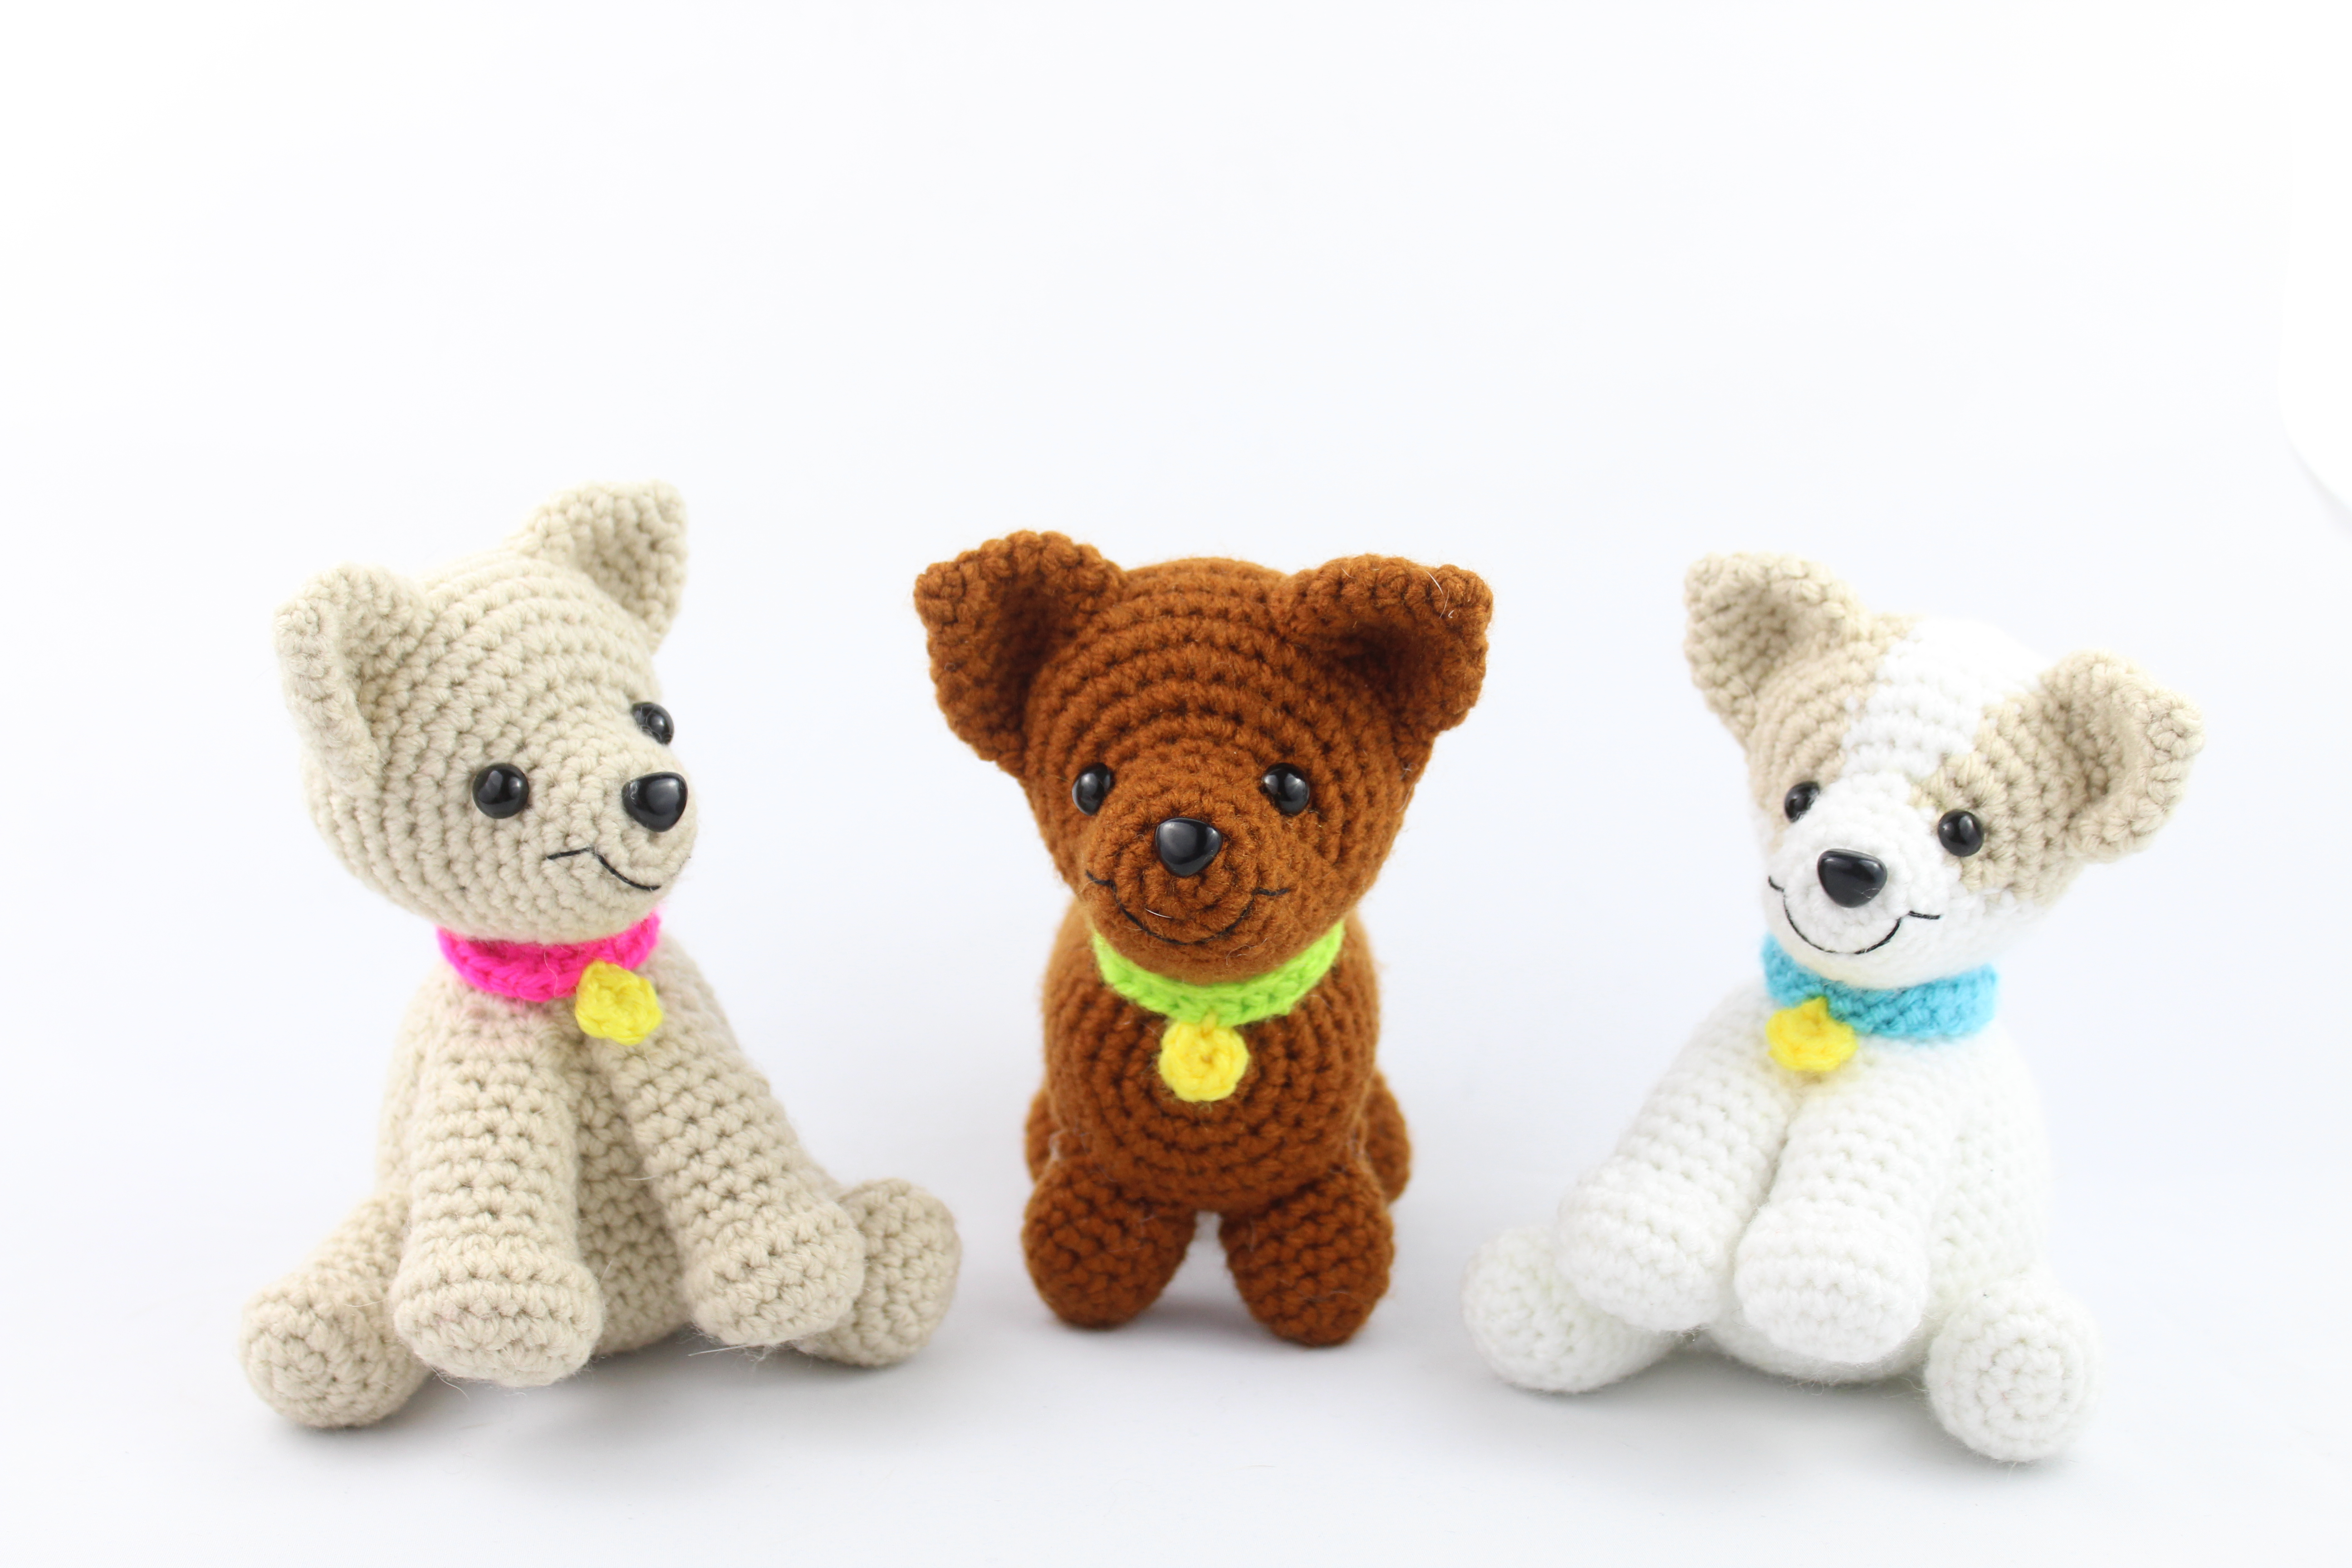 Amigurumi Little Dog Crochet Free Patterns - Crochet & Knitting | 3456x5184